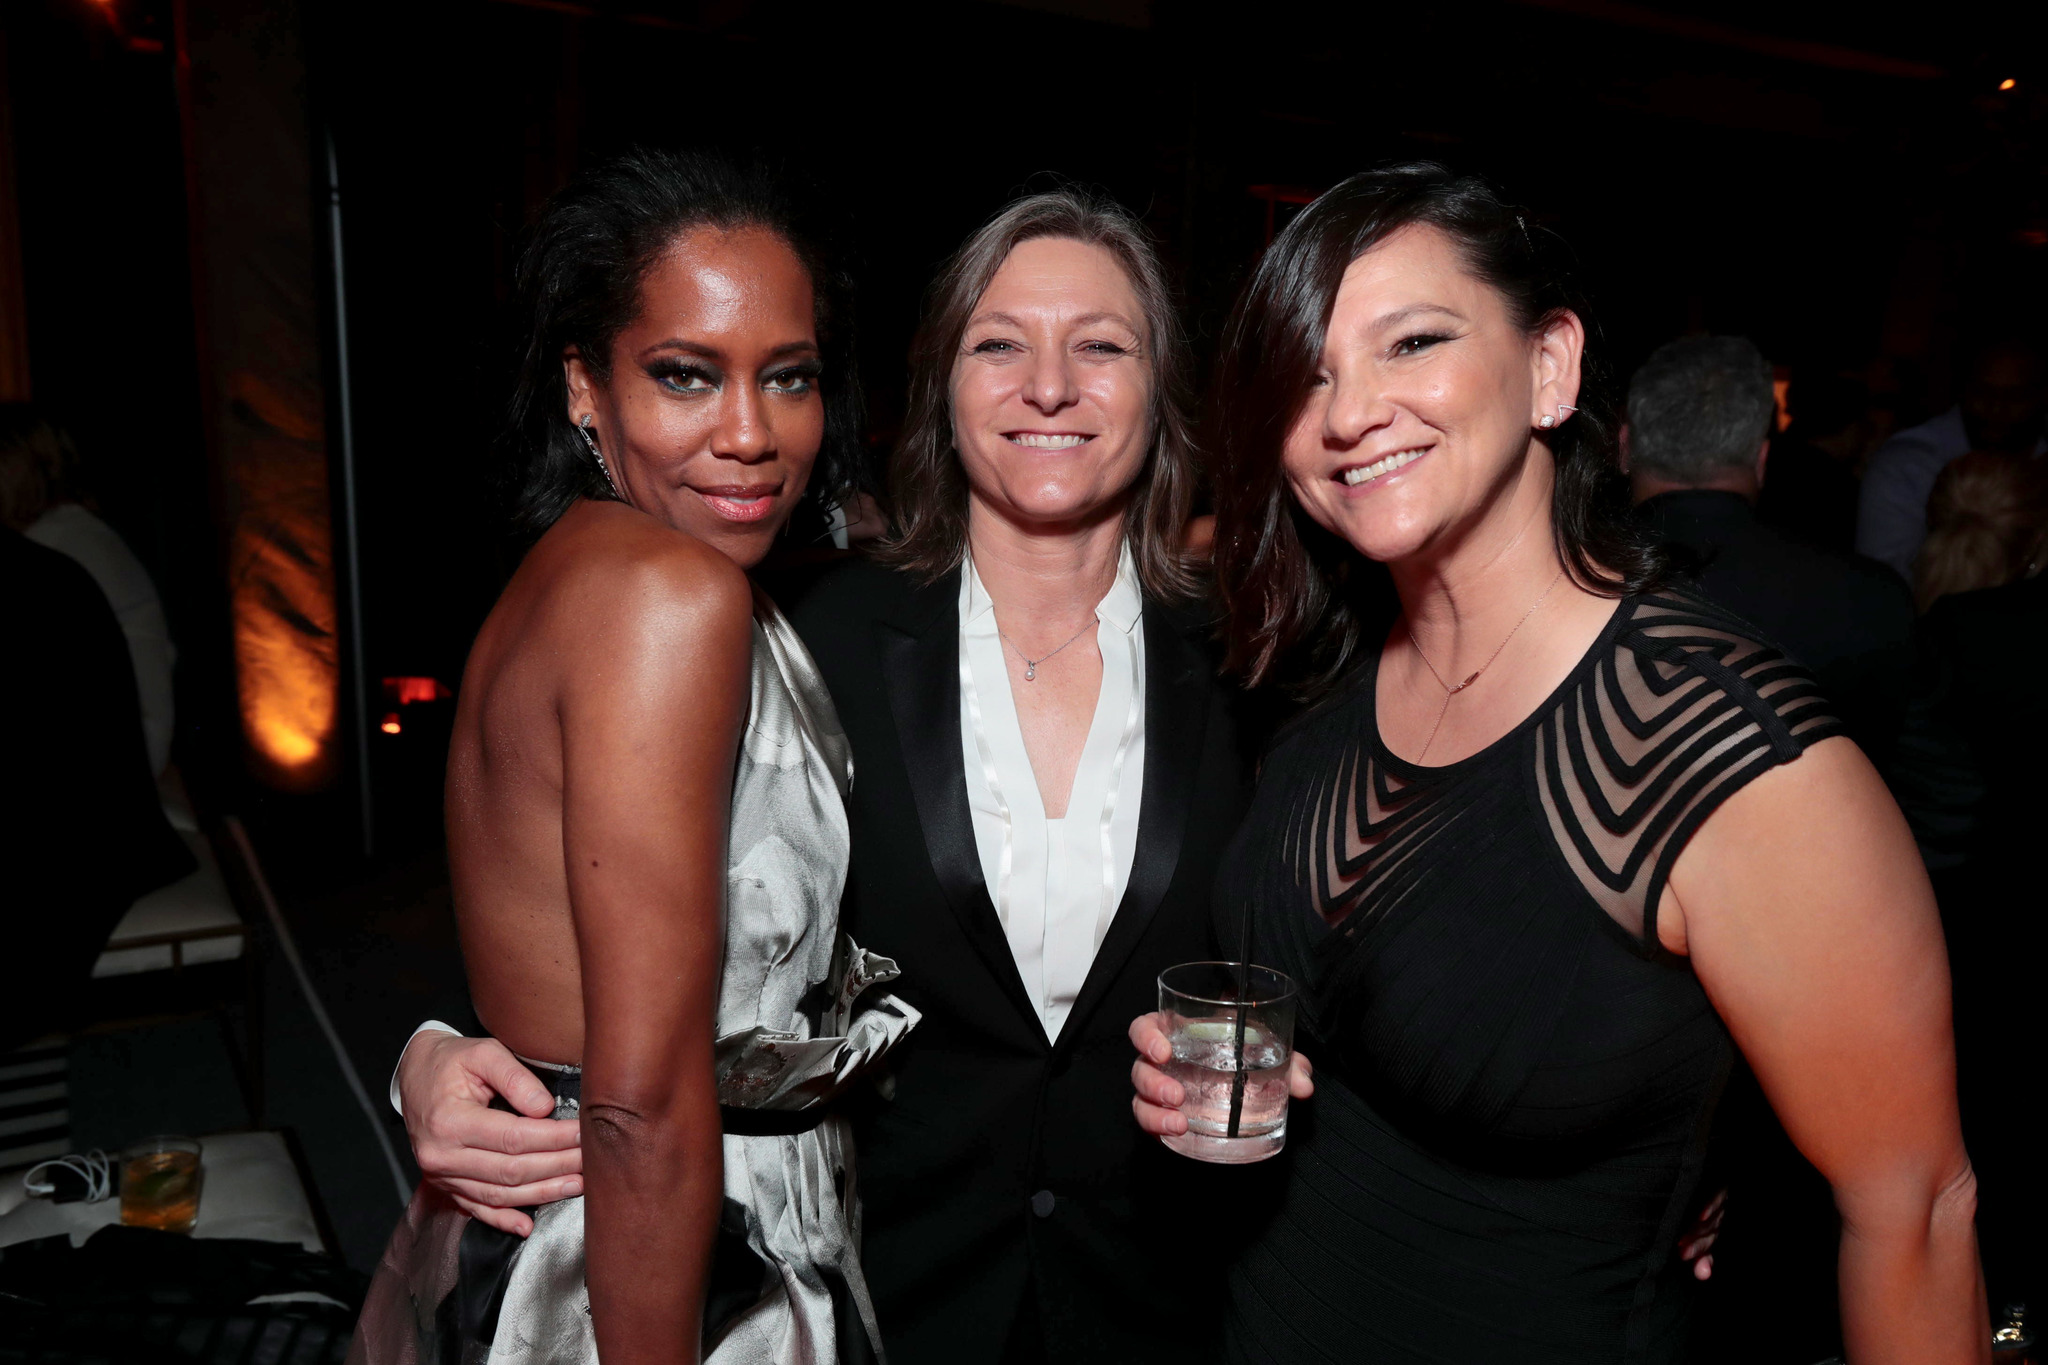 Regina King, Annie Imhoff, and Cindy Holland at an event for The 69th Primetime Emmy Awards (2017)